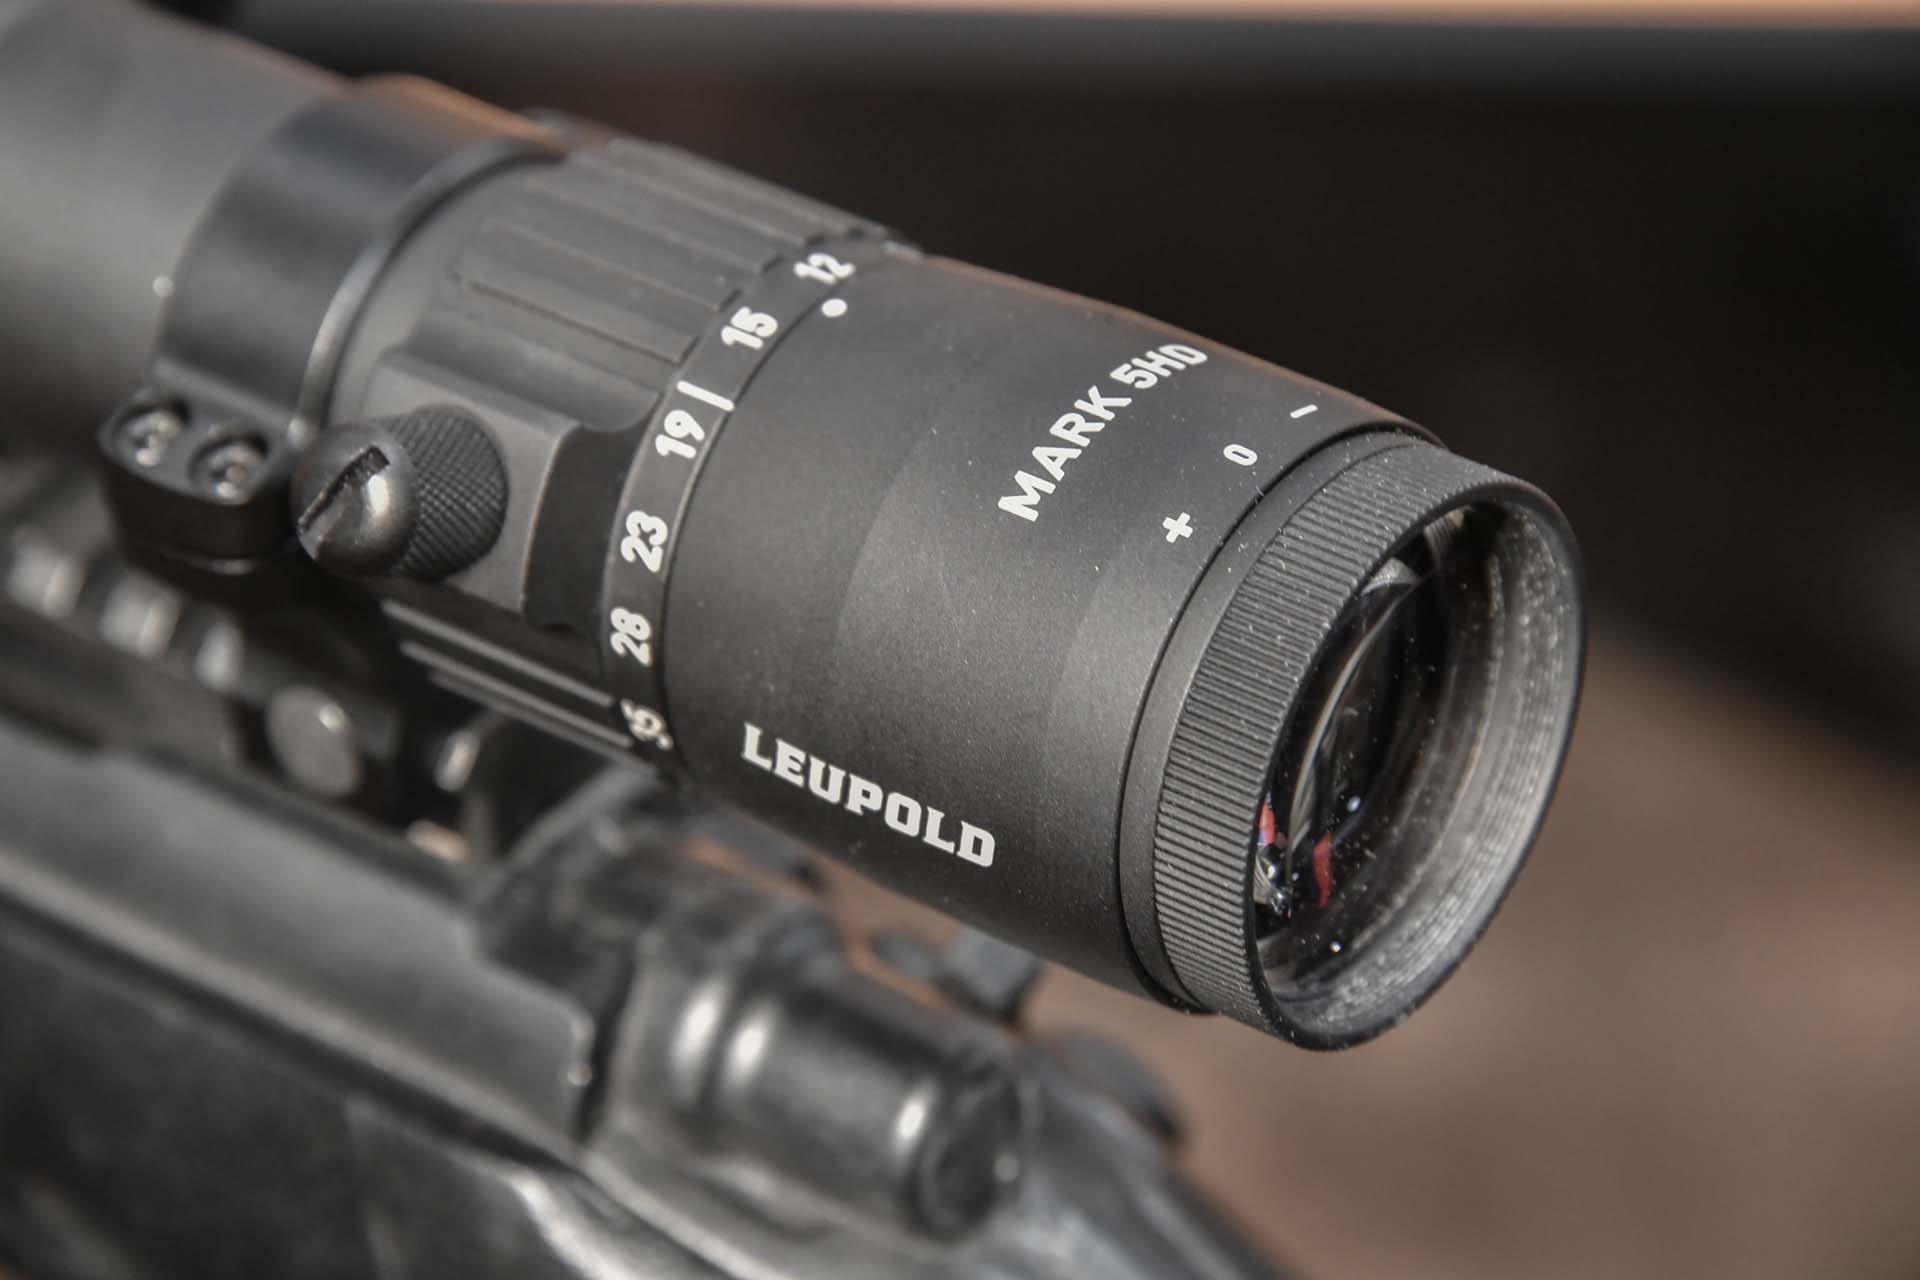 New versions for Leupold Mark 5HD and VX-5HD riflescopes